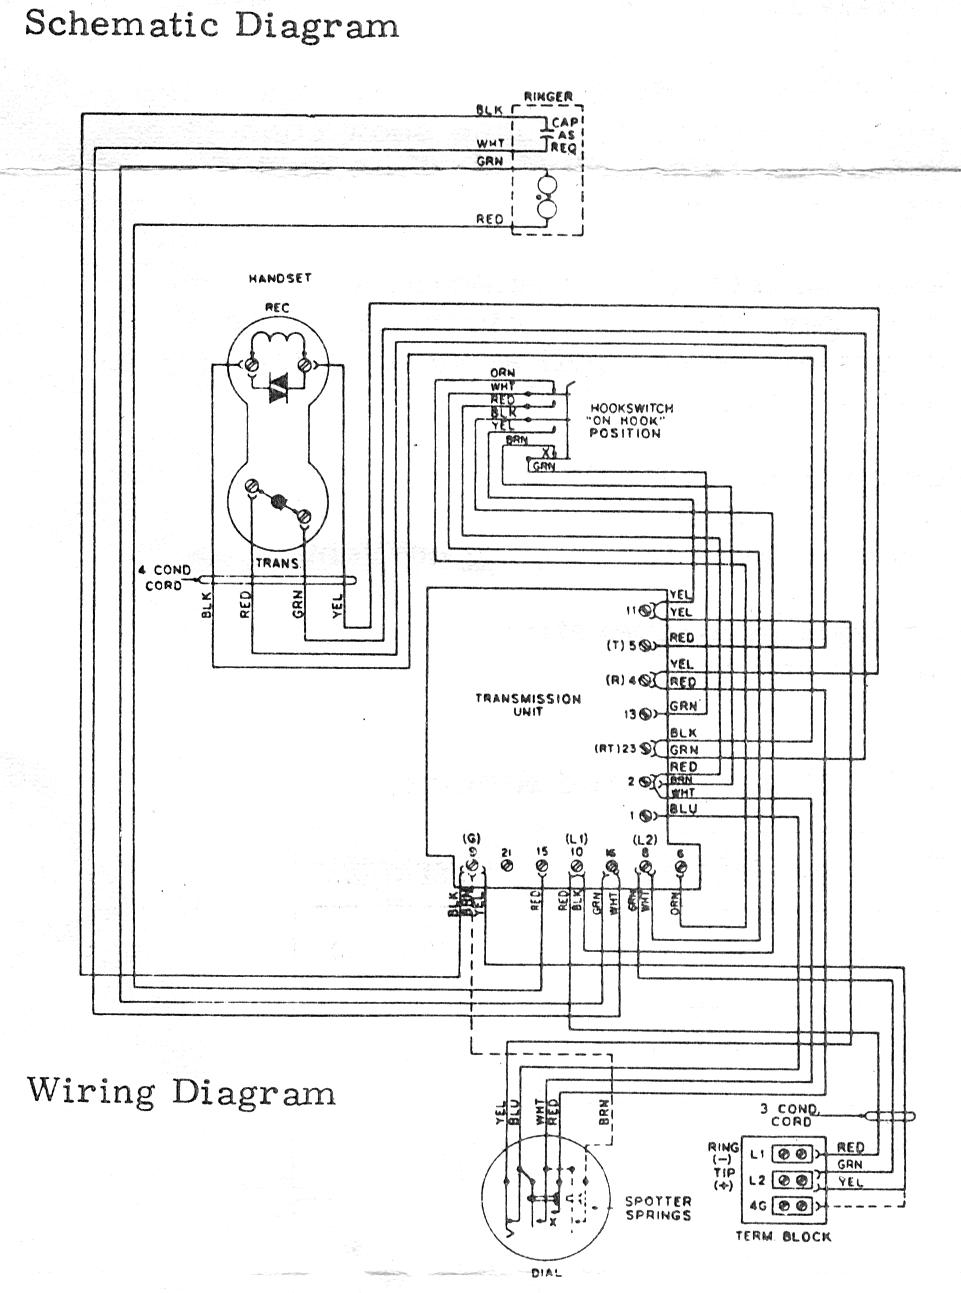 Telephone Technical References Thin Half Page System Diagram 2 For Key Use